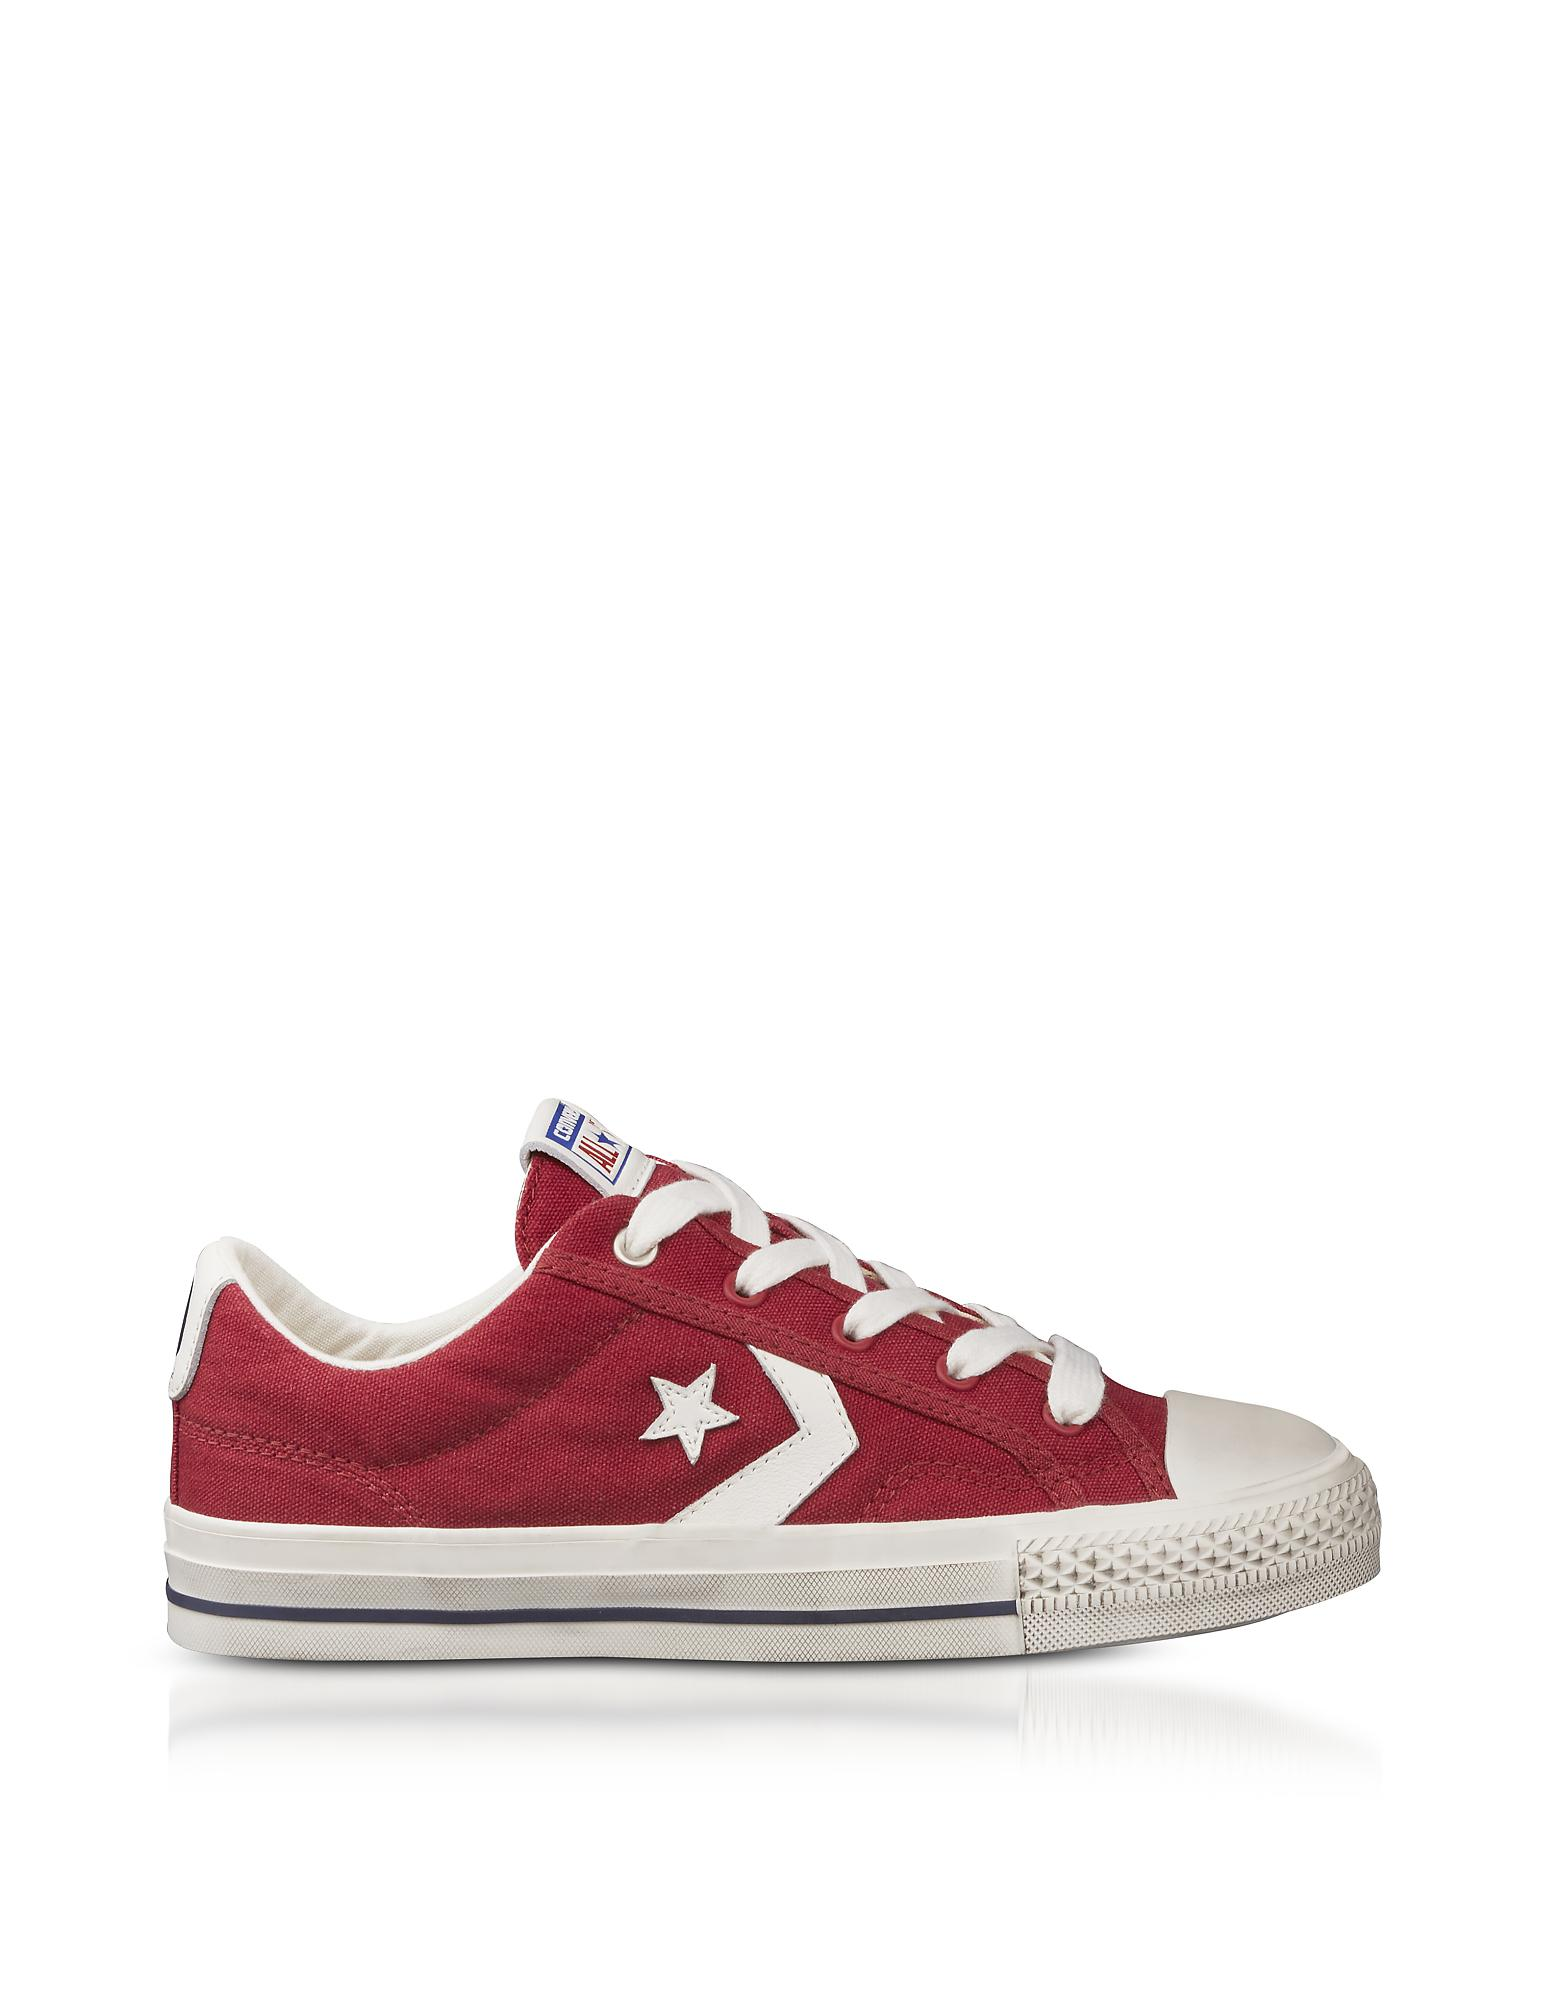 9e1126086c22 Converse Red Star Player Distressed Ox Canvas Men s Sneakers in Red ...